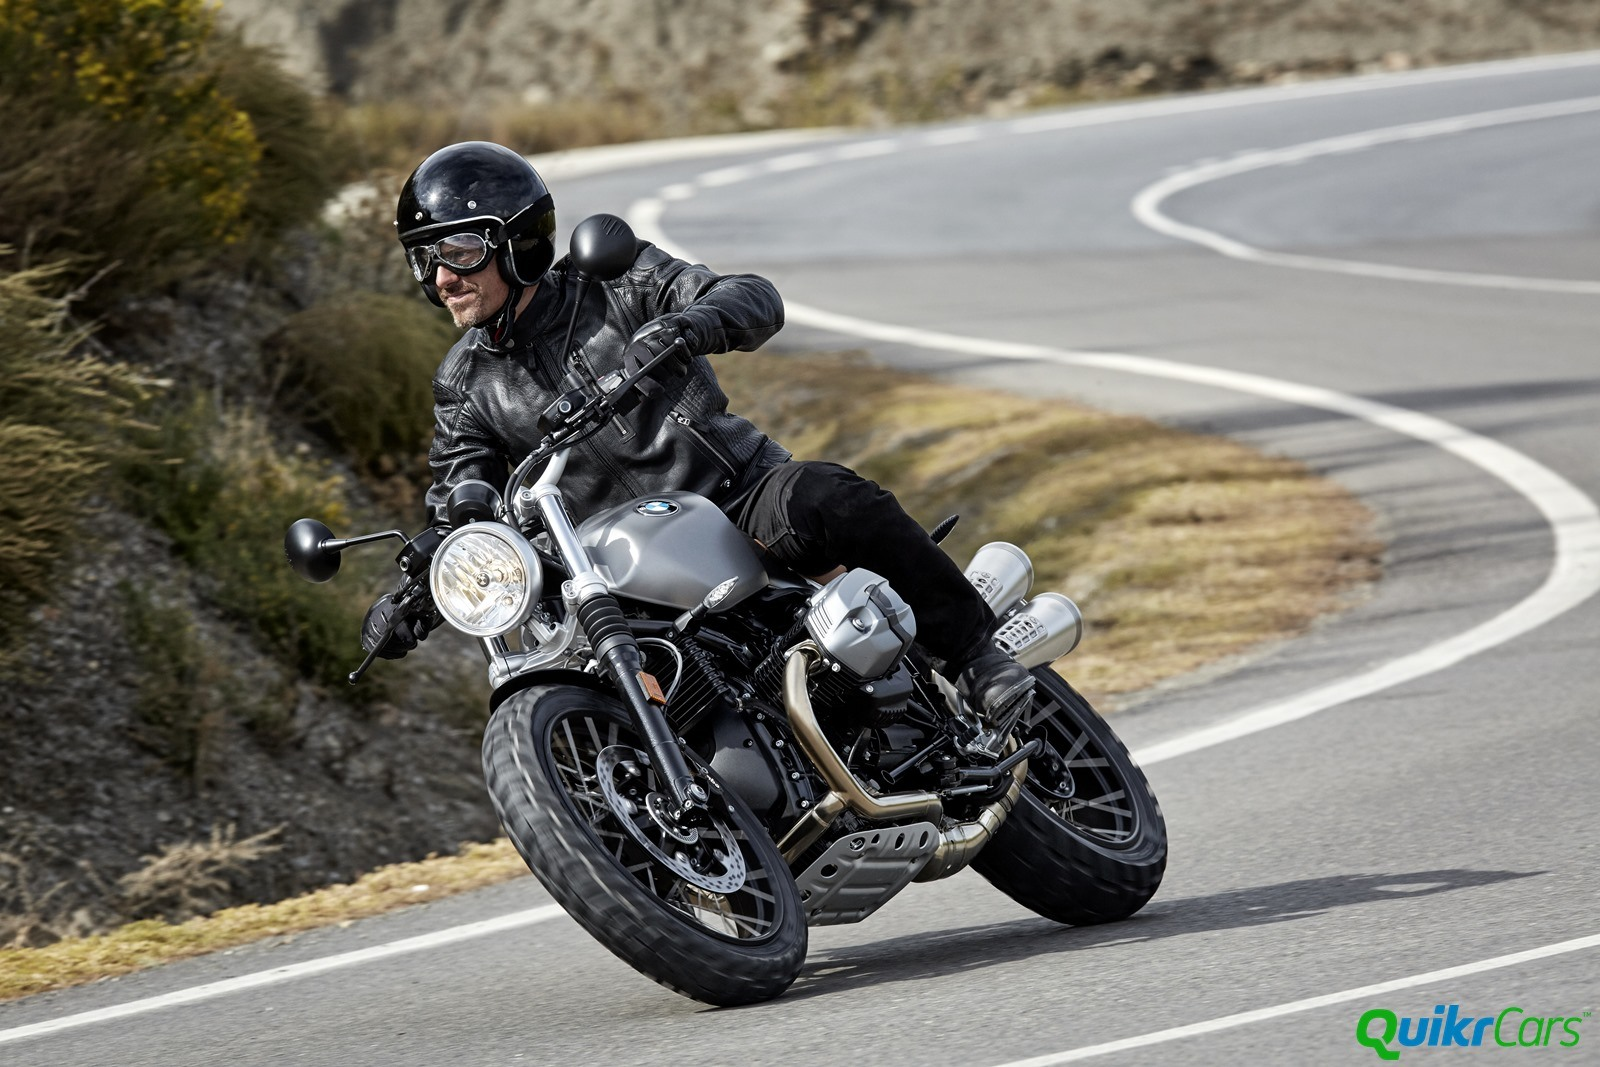 BMW R nineT Scrambler officially unveiled at EICMA